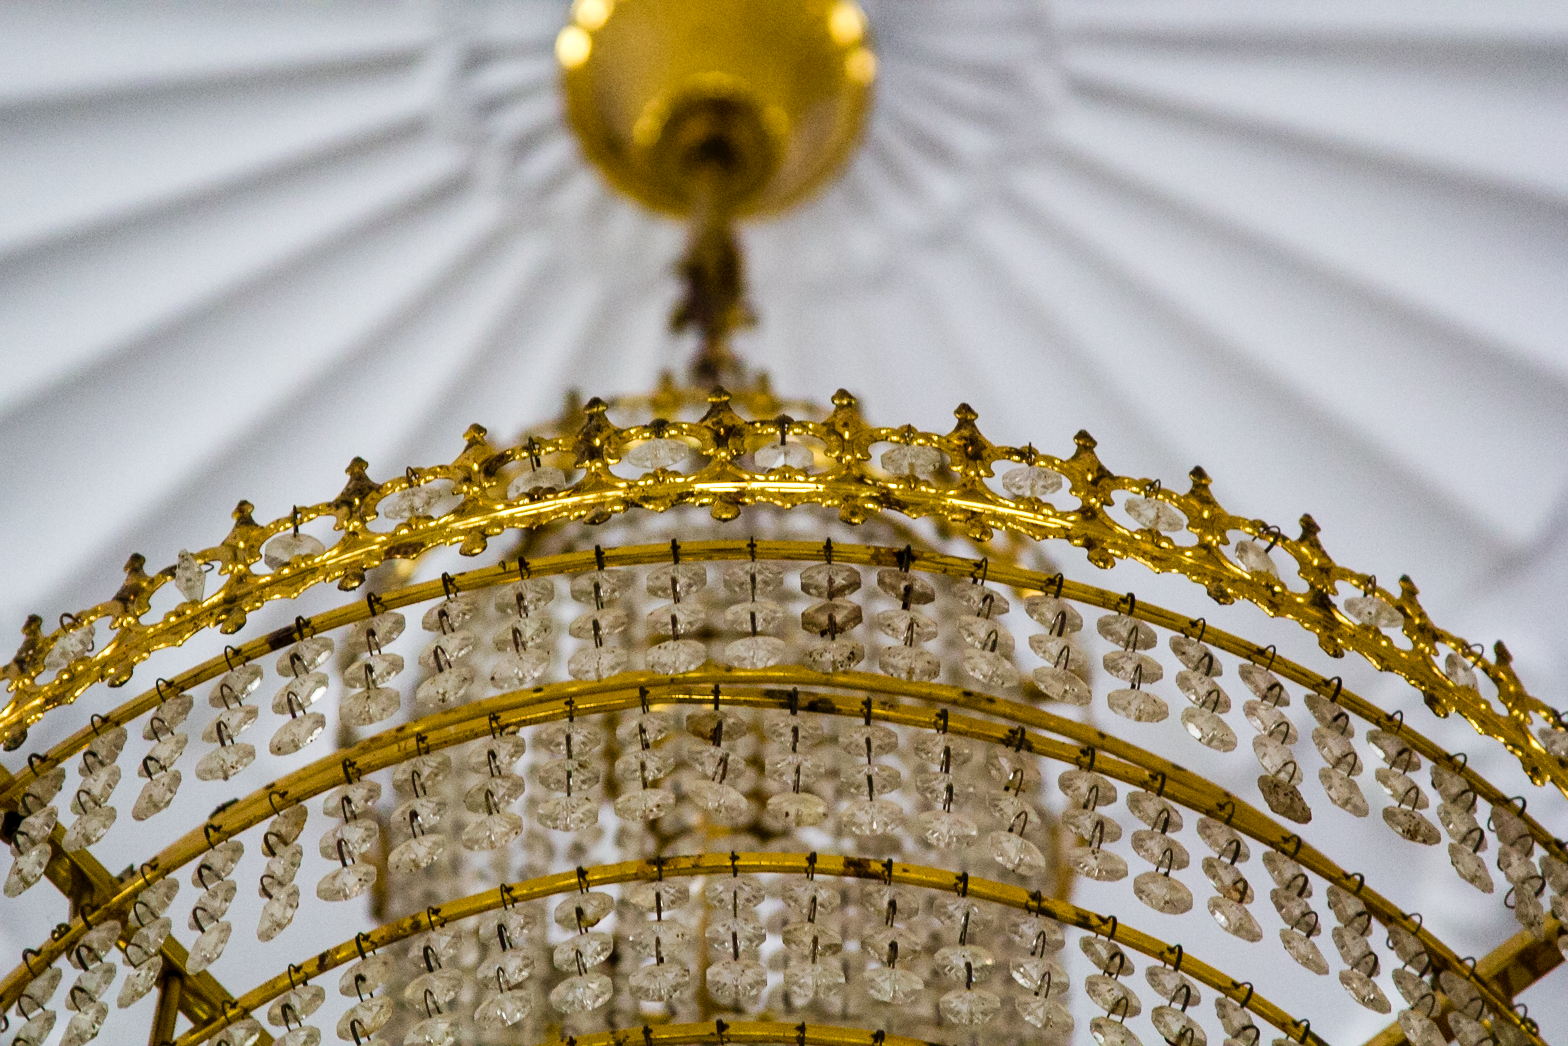 Photo Diaries| A temple in White and Gold, in Rajasthan, India. www.surelysimple.com